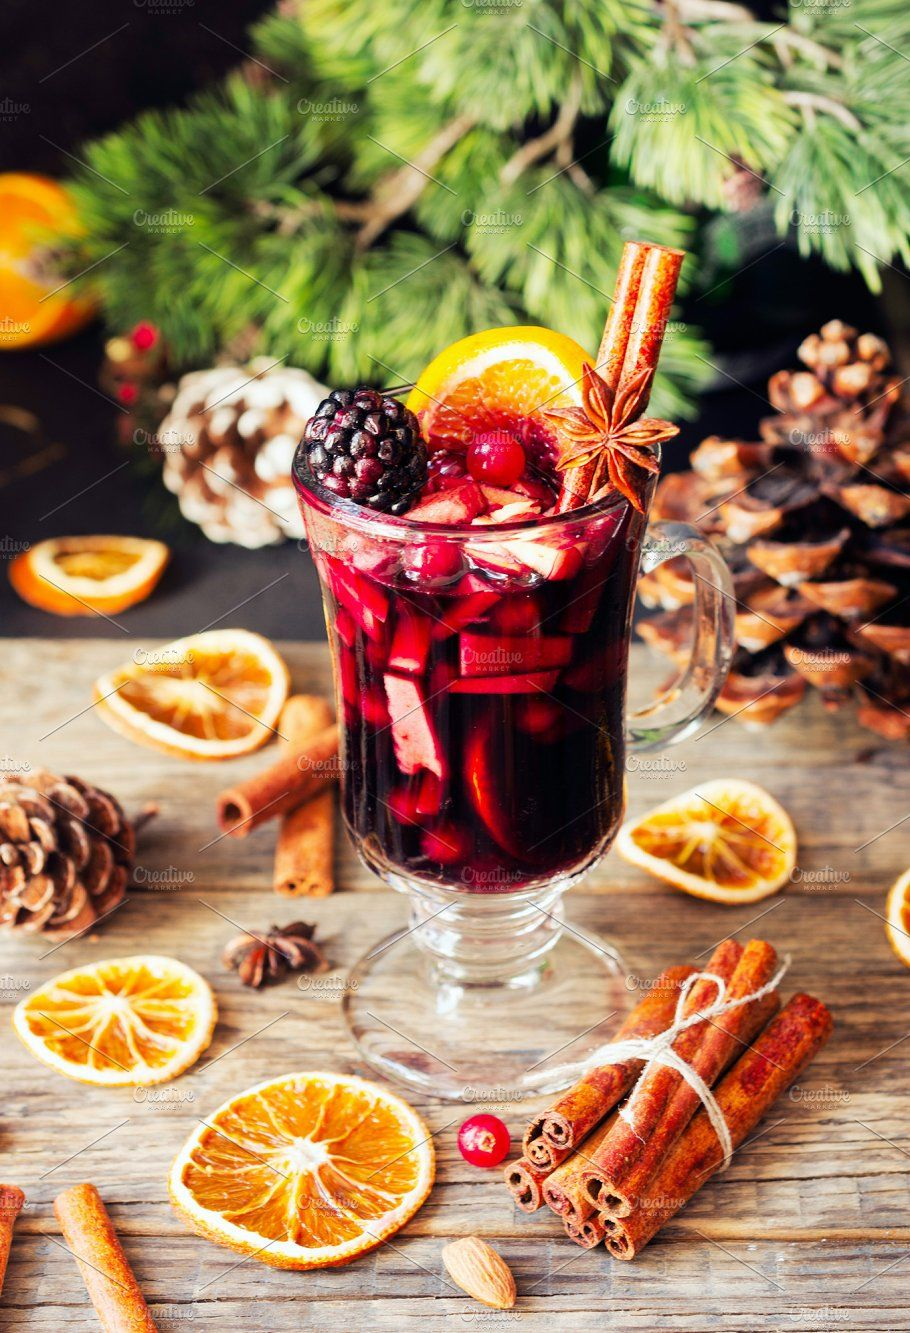 Glass Of Hot Mulled Wine For The New Year With Ingredients For Cooking Nuts And Christmas Decorations Mulled Wine Hot Winter Drinks Christmas Coffee